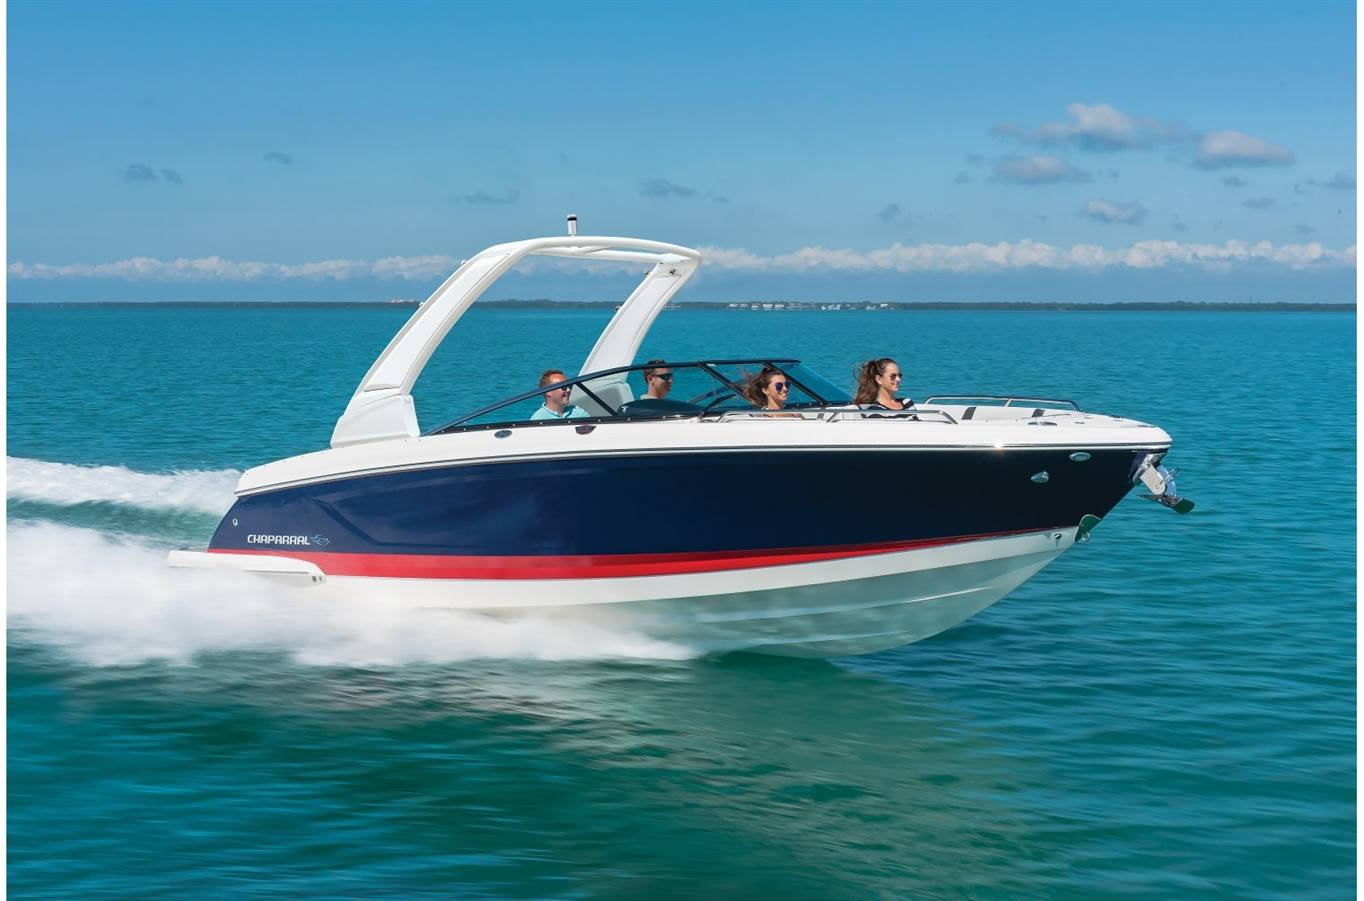 Inventory from Chaparral and Sea Ray Indian Springs Marina